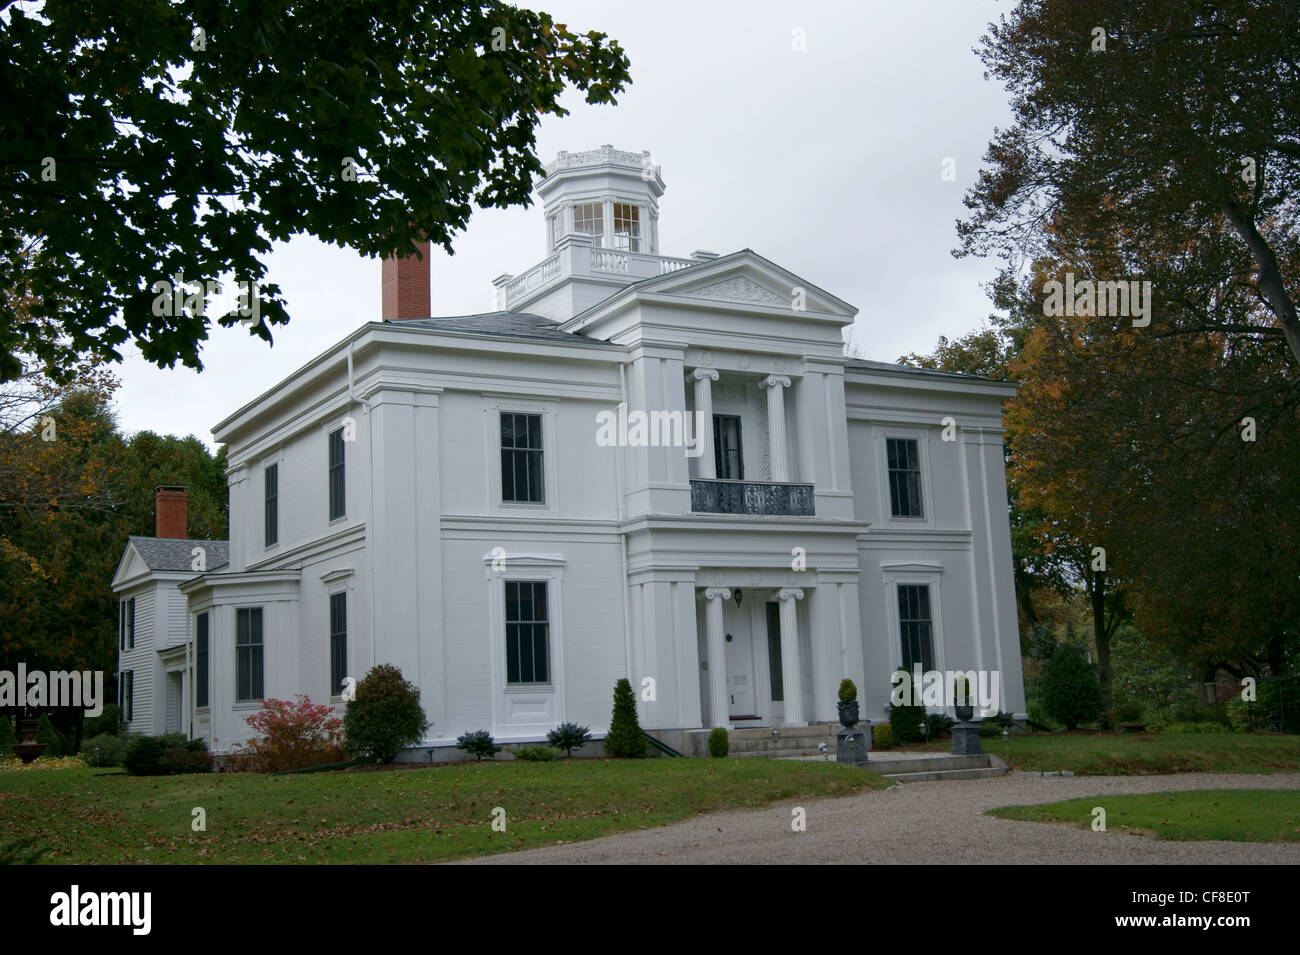 The White House Inn, Greek Revival House on the National Register of Historic Places, Belfast, Maine. - Stock Image